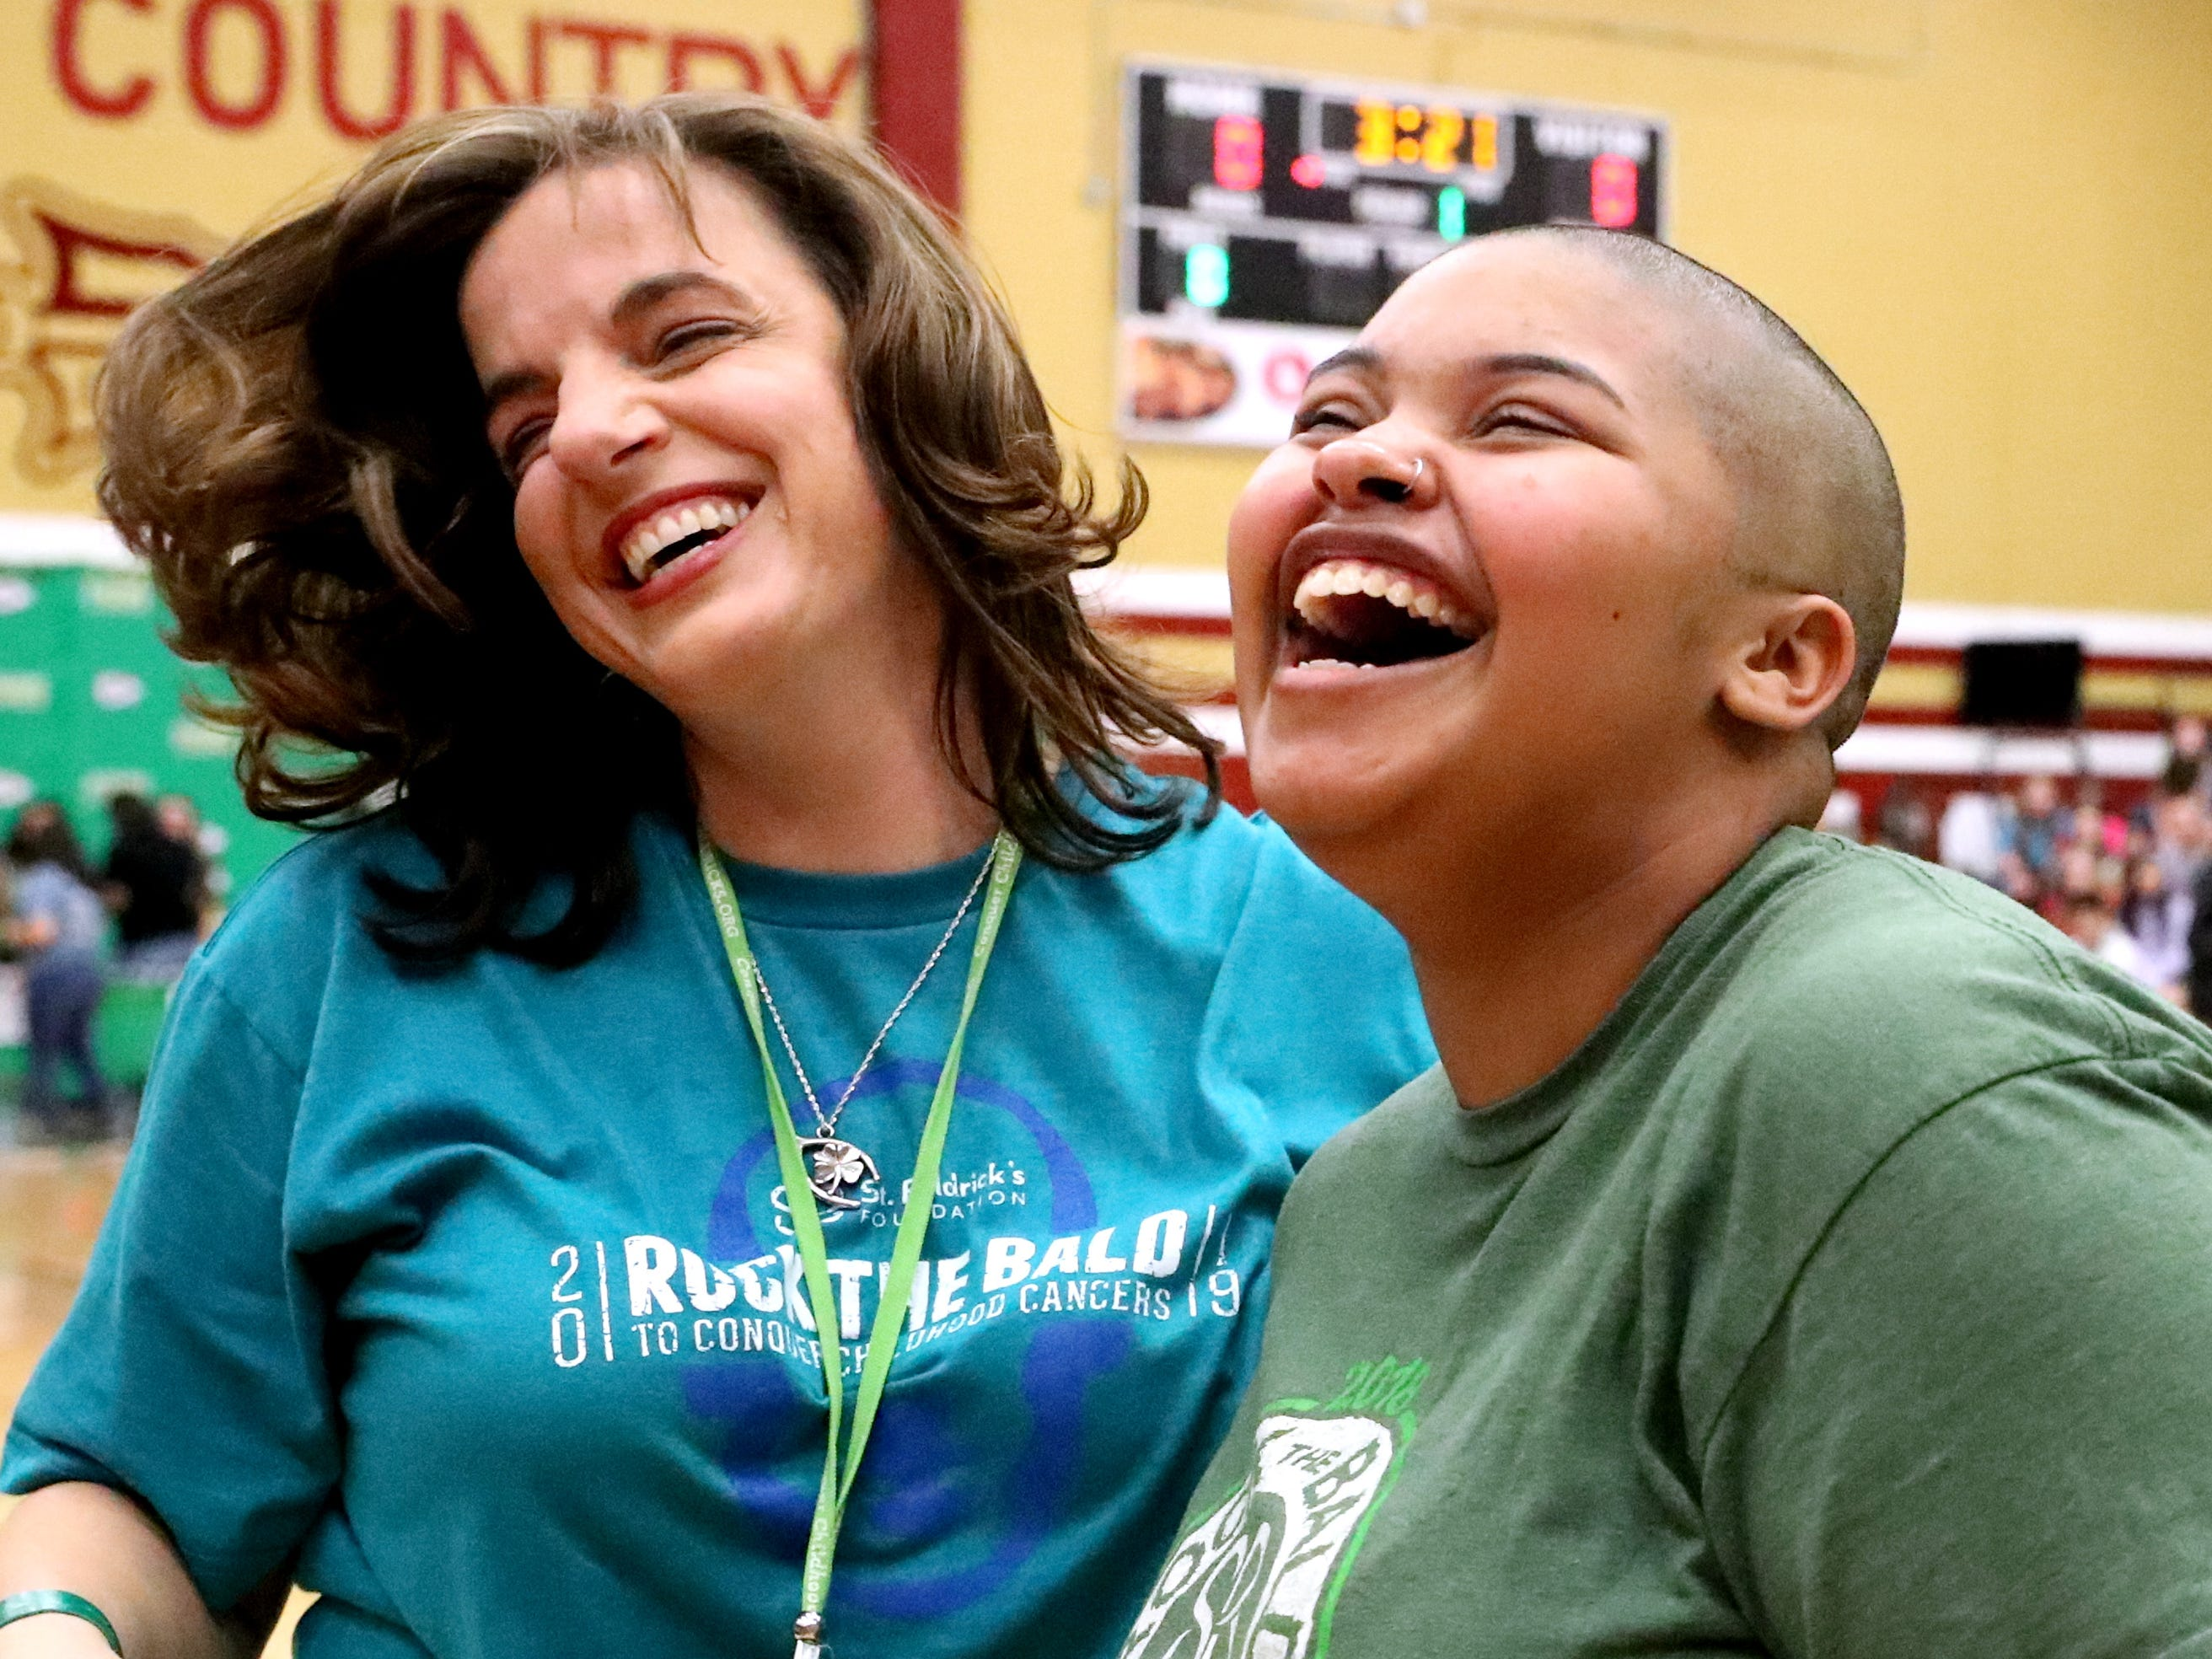 Riverdale teacher Caron Peck and Riverdale junior Arial Witty Floyd react after Witty Floyd gets her head shaved during Riverdale High School's sixth annual Brave the Shave fundraiser to benefit St. Baldrick's Foundation on Thursday, March 21, 2019. The organization raises funds and awareness for childhood cancer.